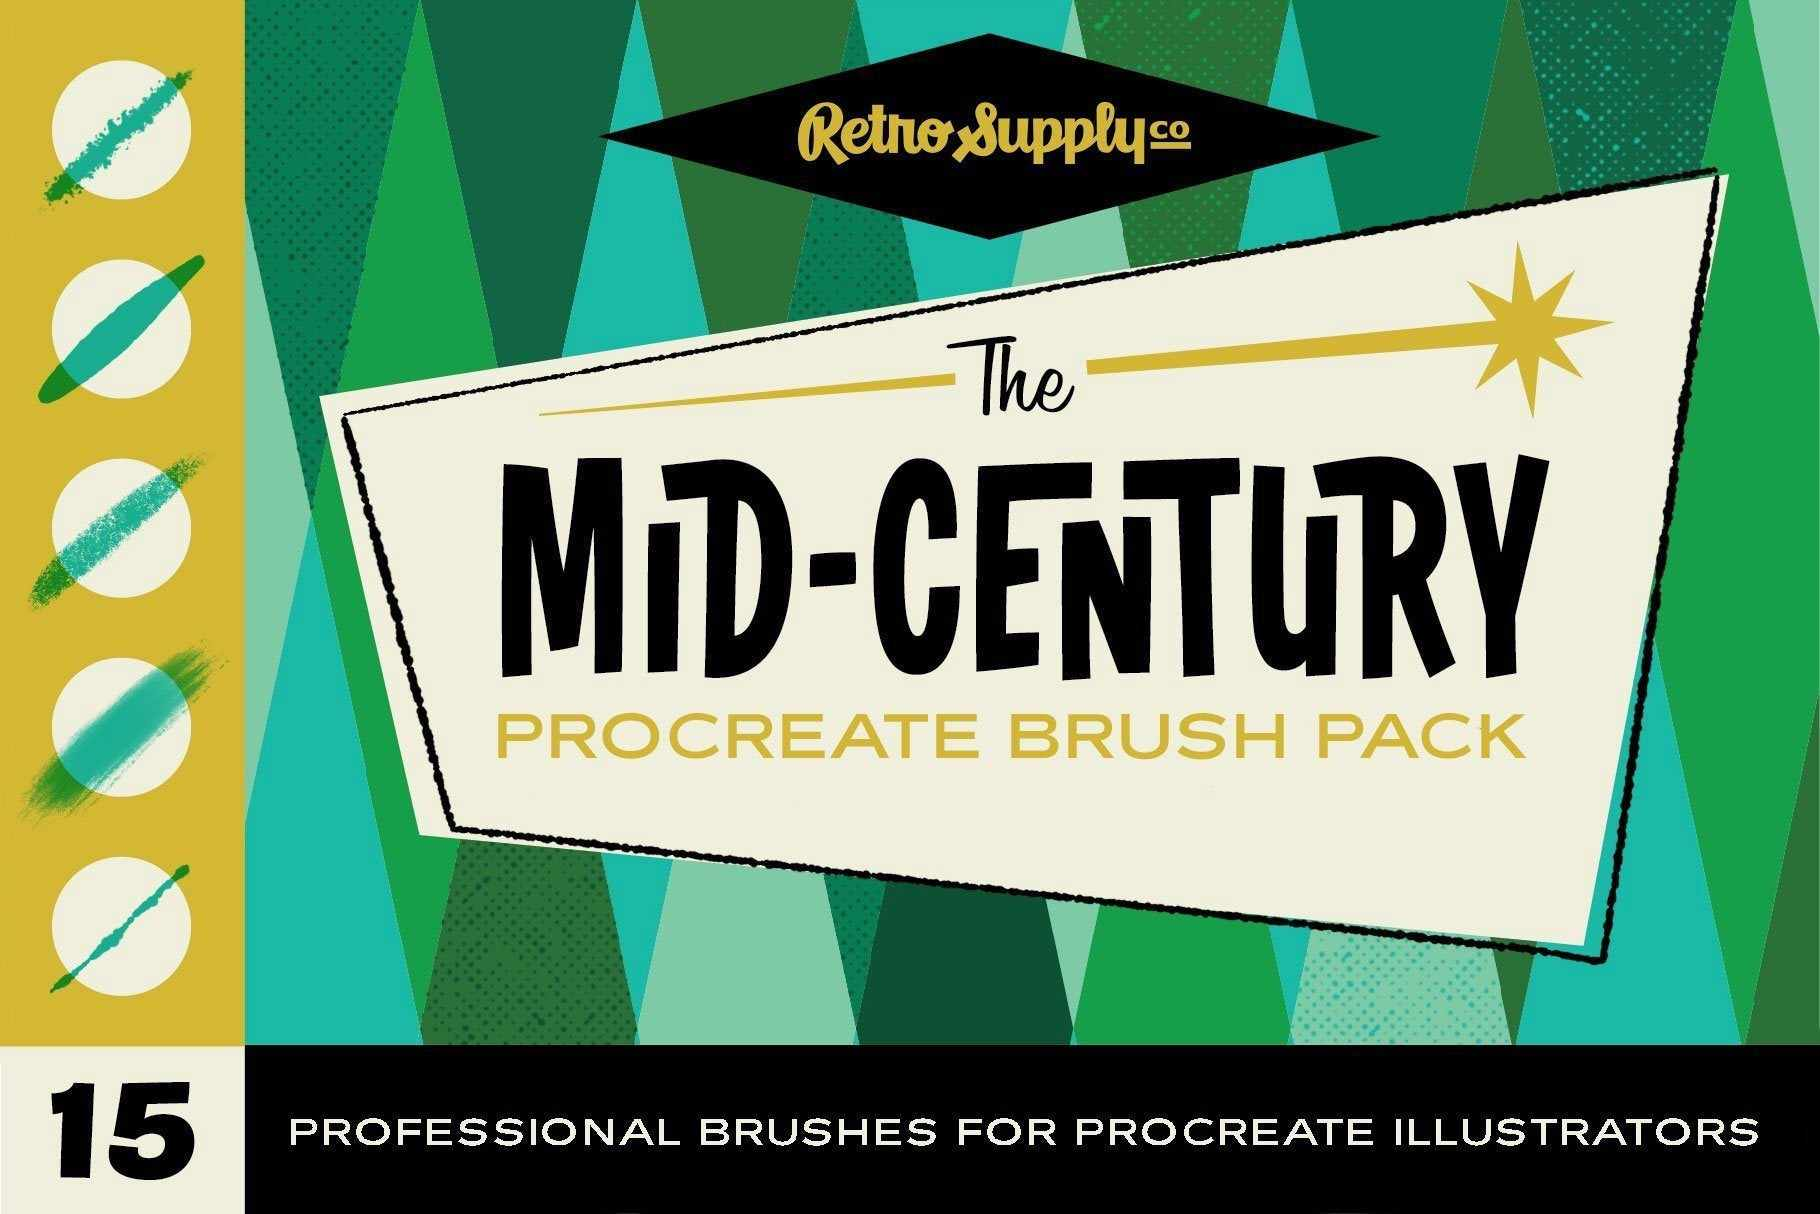 The Mid-Century Procreate Brush Pack for Procreate by RetroSupply and Brave the Woods